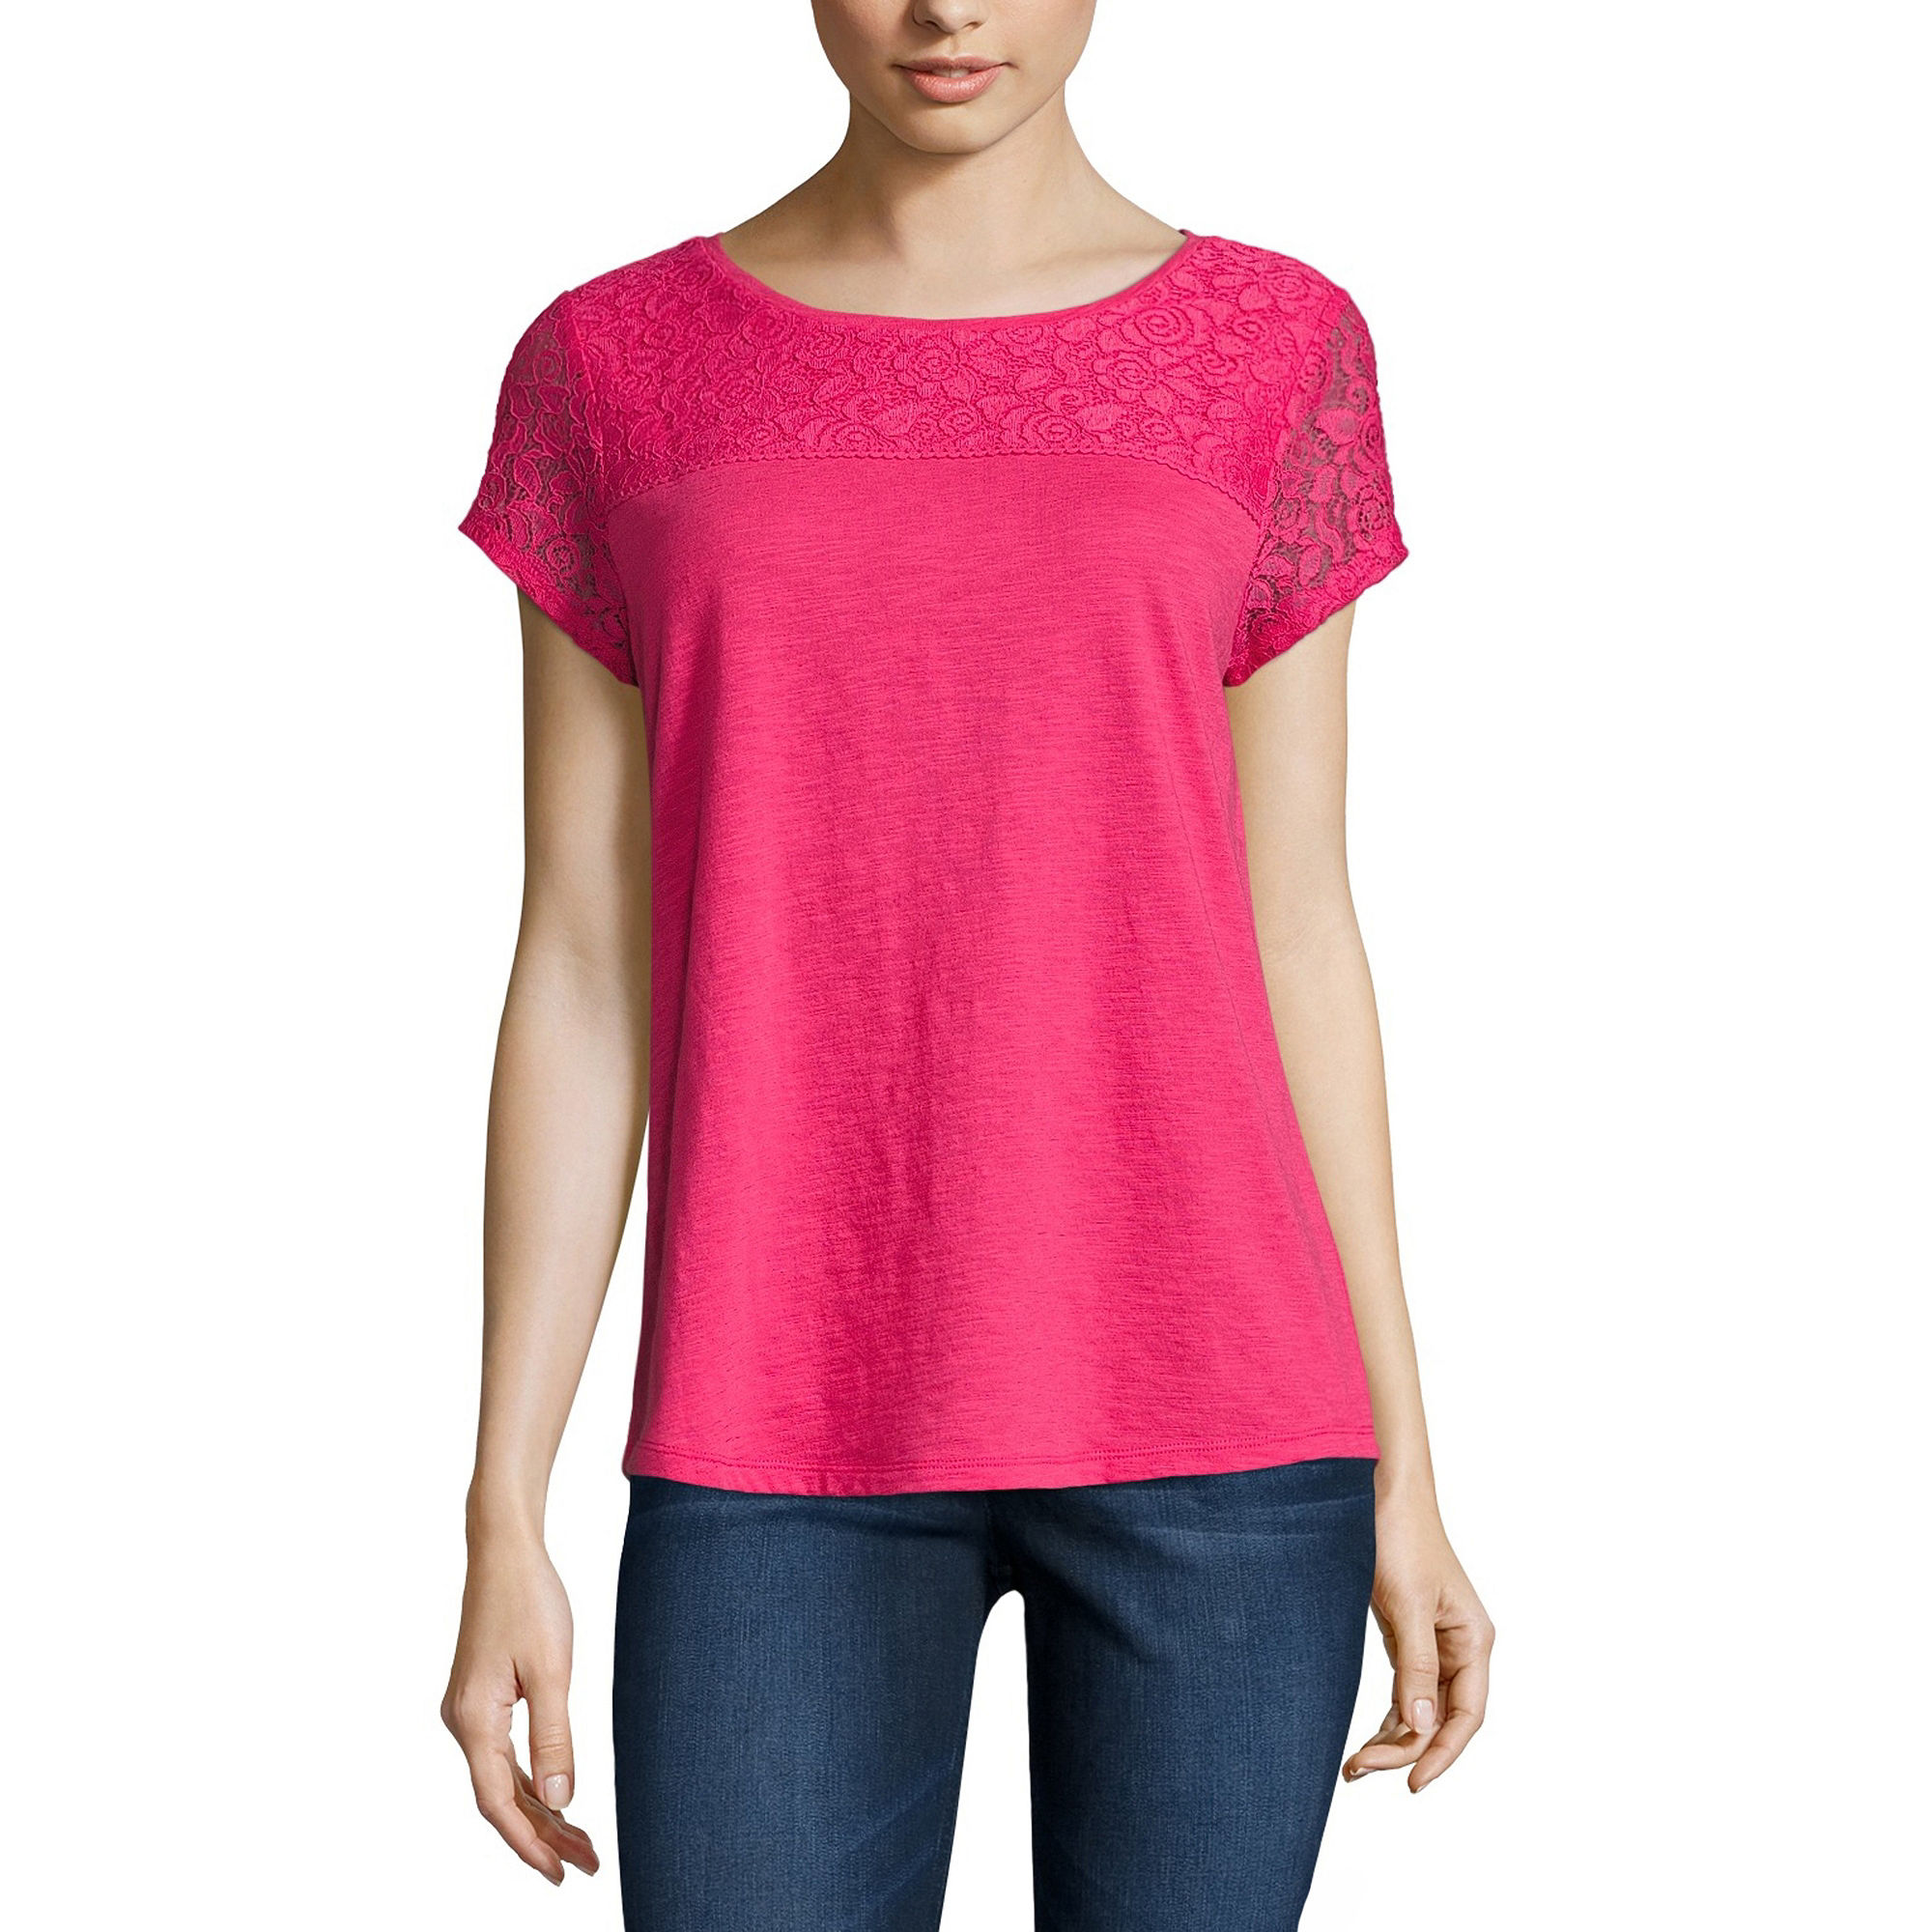 Liz Claiborne Short Sleeve Crew Neck T Shirt | Top and Clothing